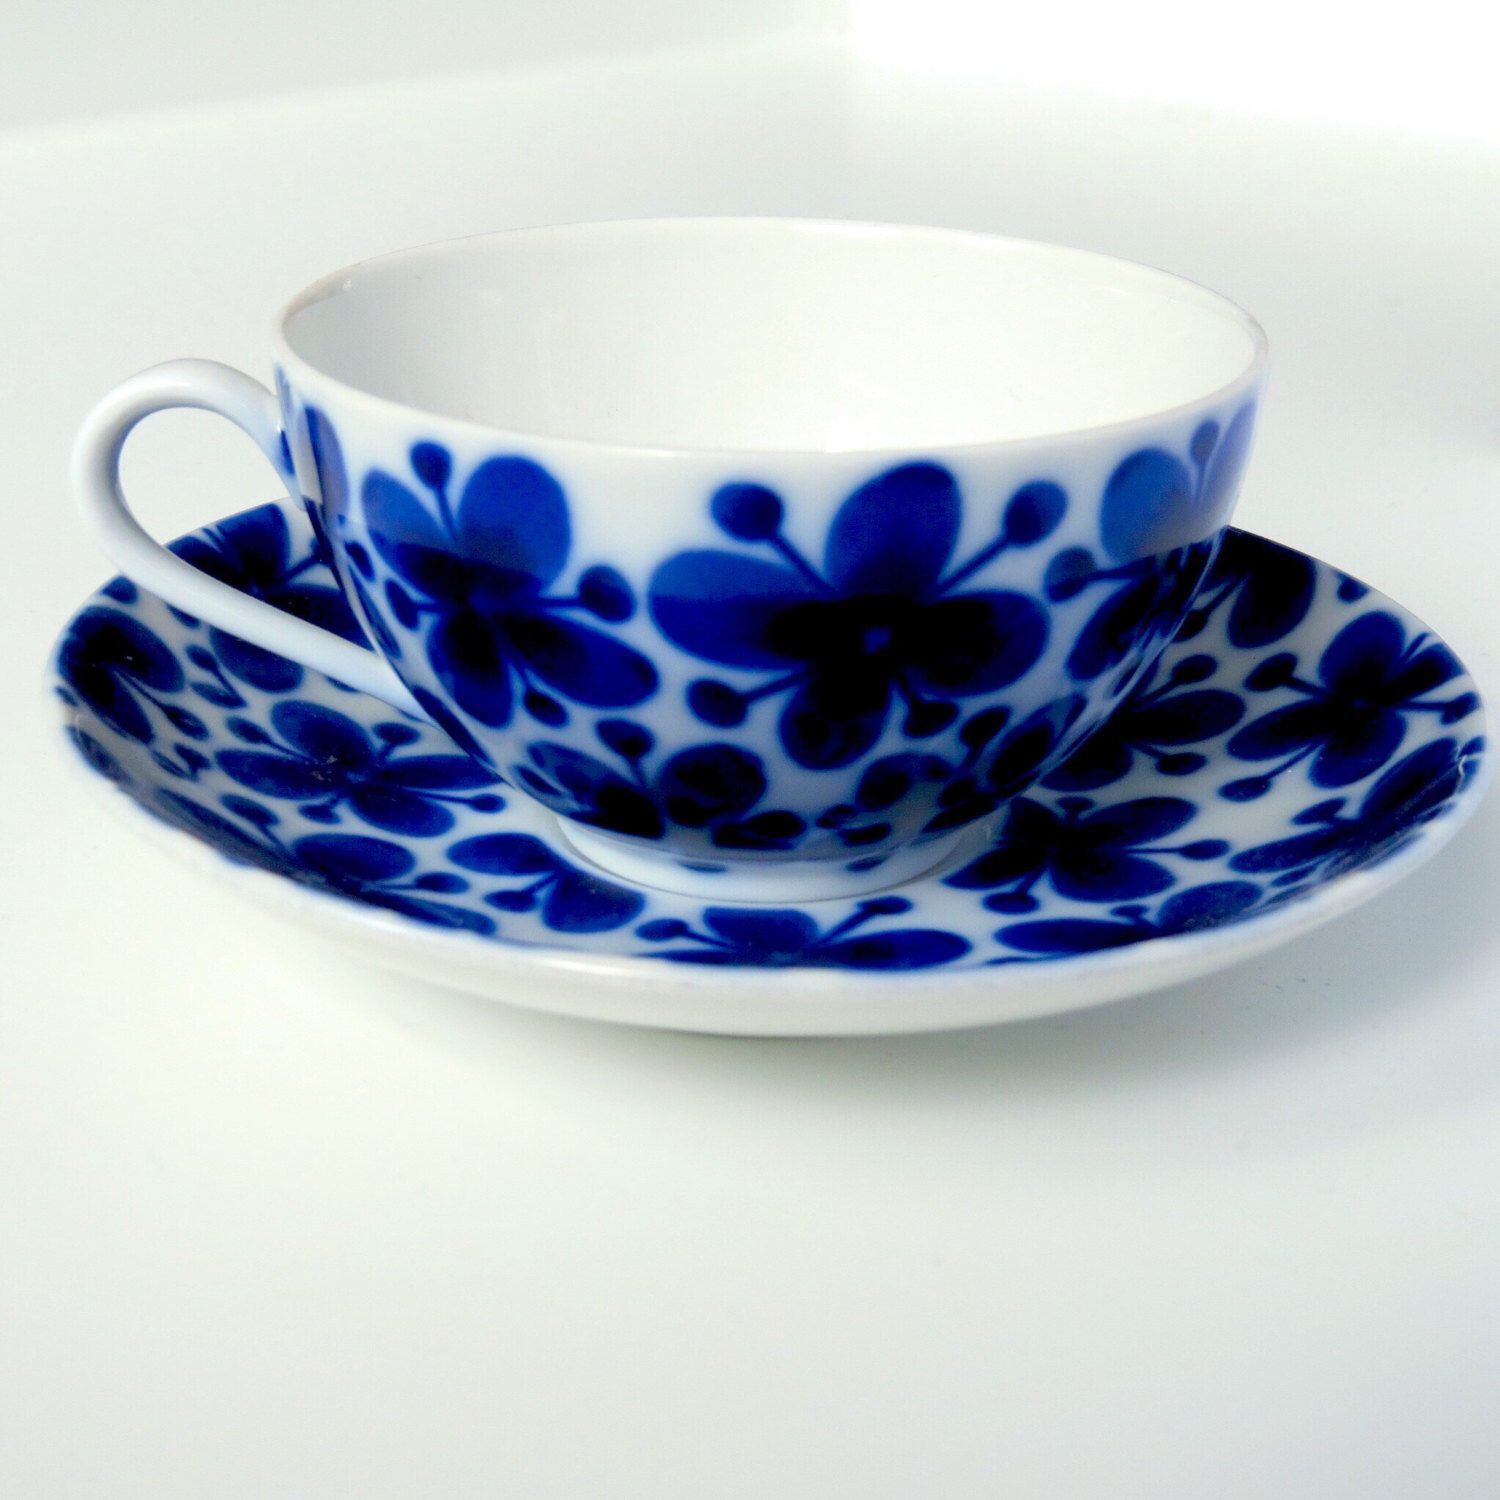 Rorstrand Mon Amie blue and white porcelain tea cup and saucer / Scandinavian modern mid century modern / See shop Arabia Gustavsberg Stig by VintageDesignTreats on Etsy https://www.etsy.com/listing/450972086/rorstrand-mon-amie-blue-and-white